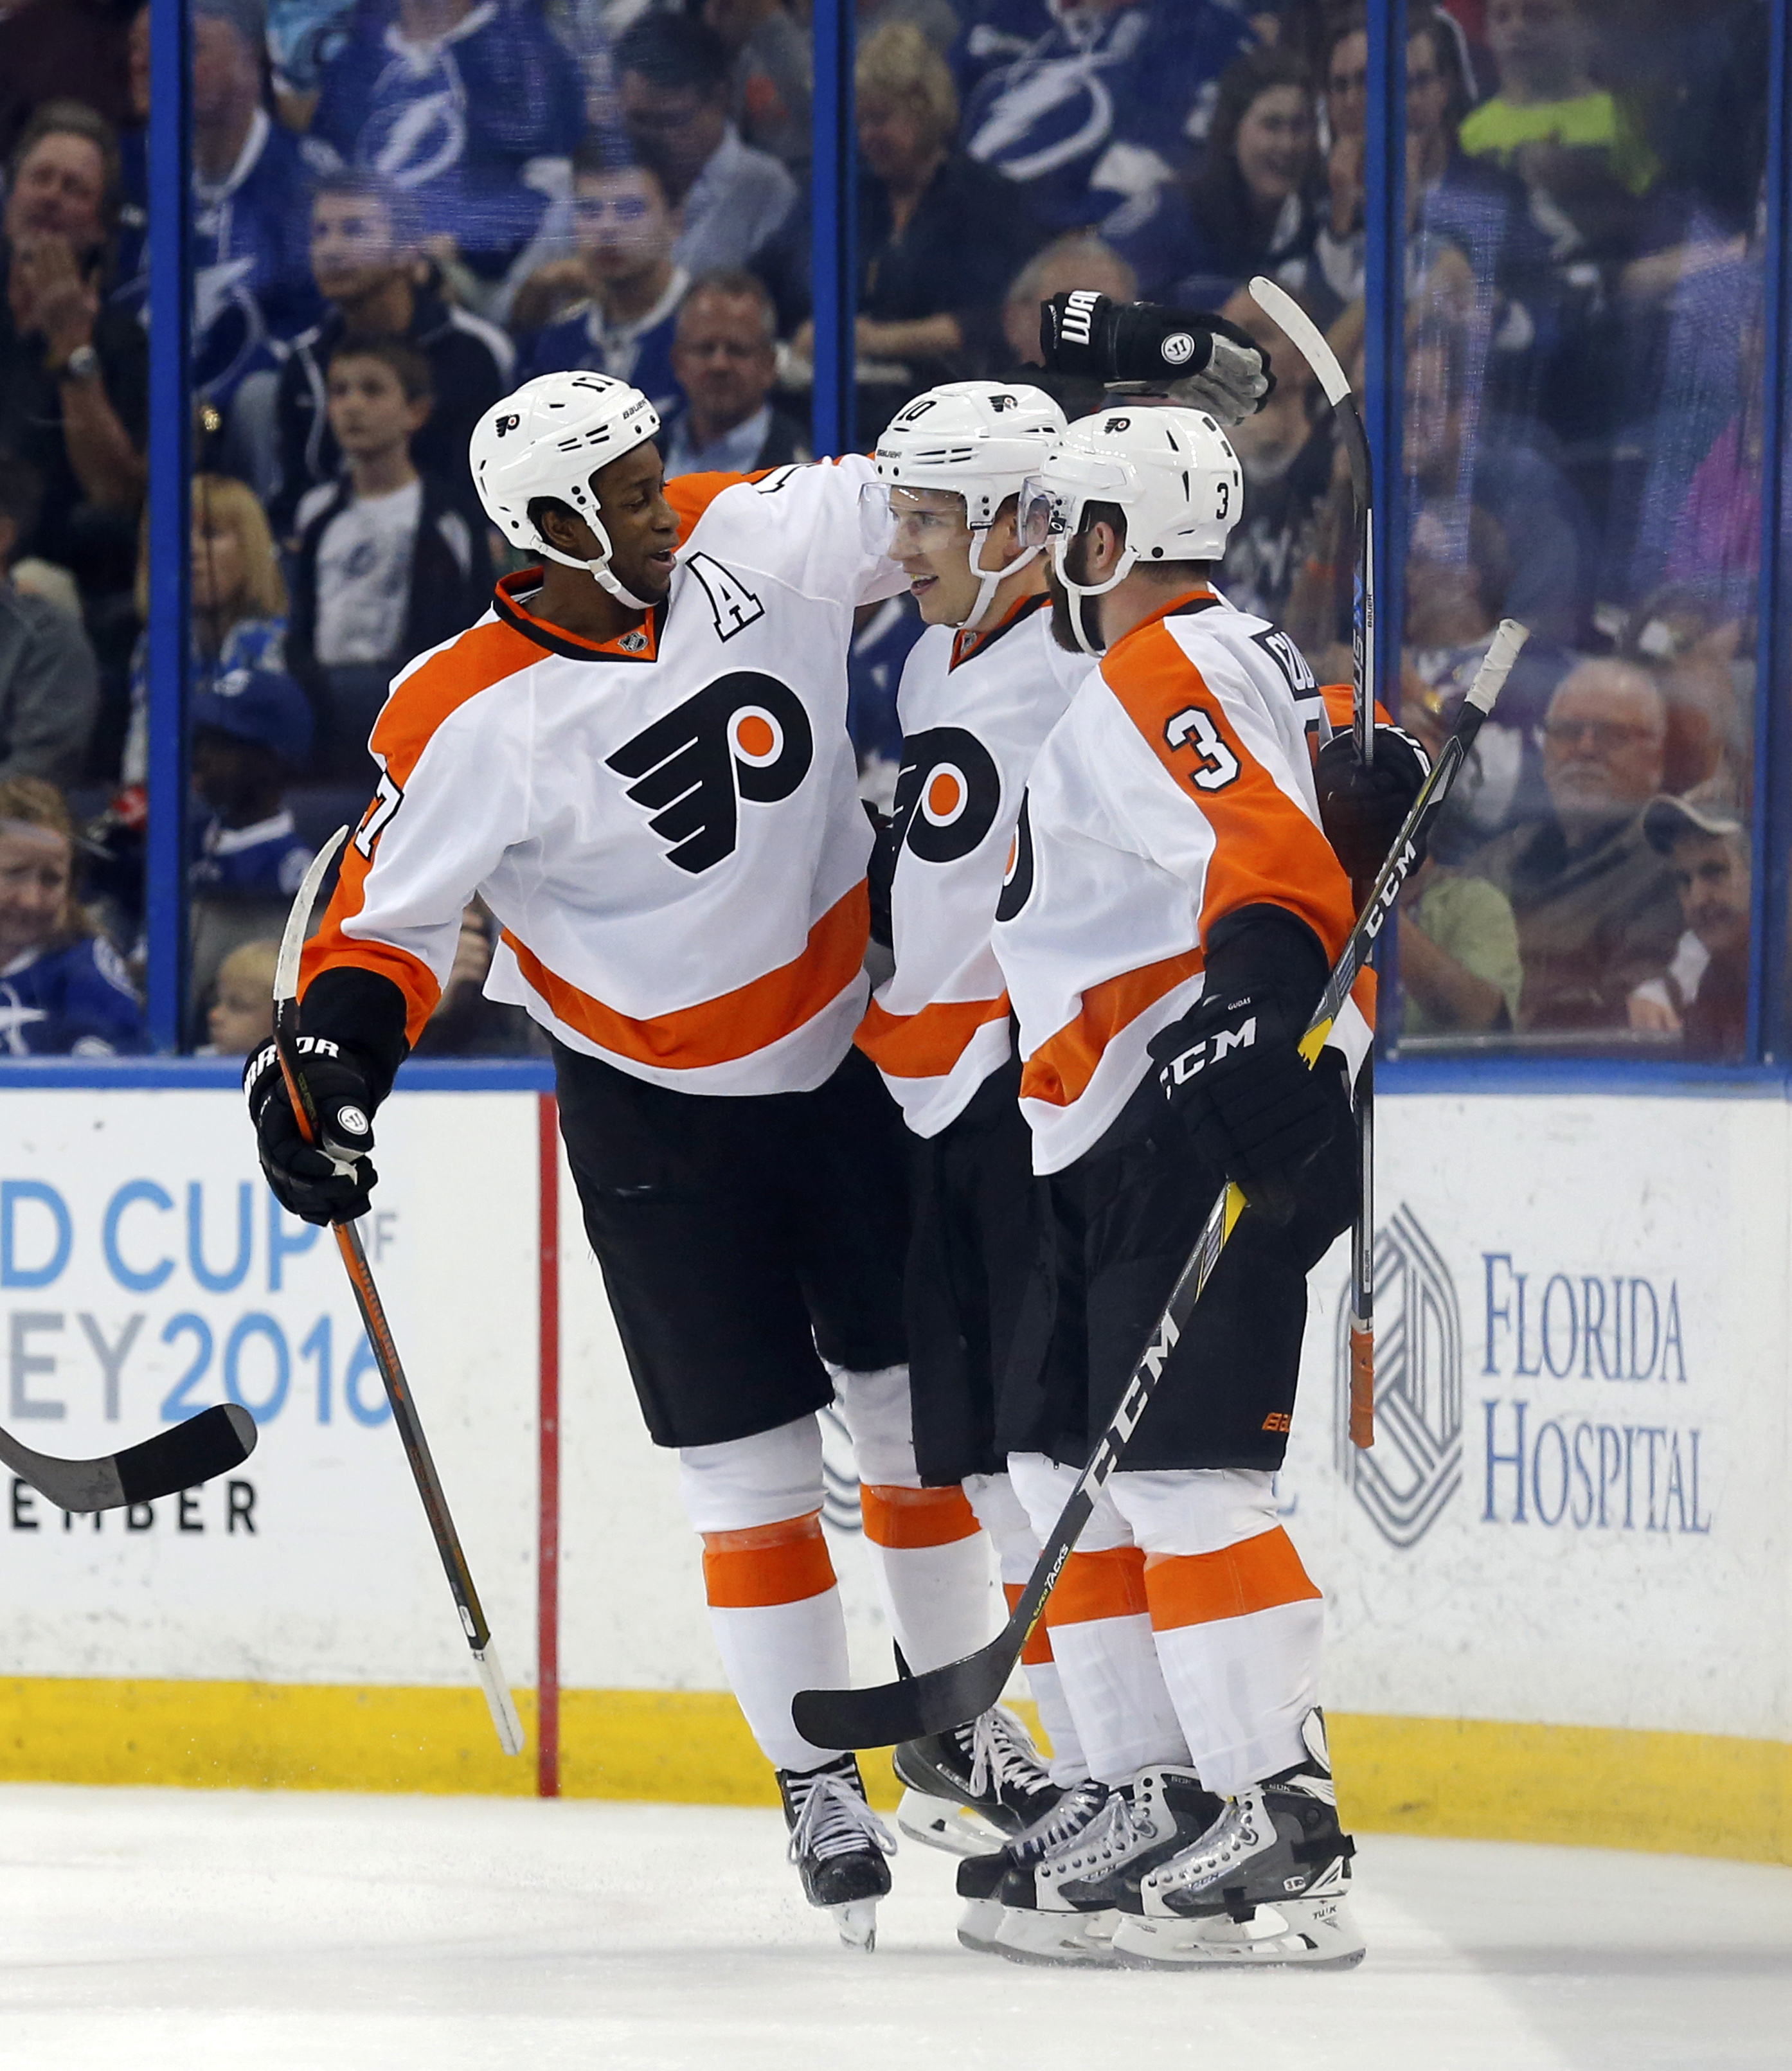 Philadelphia Flyers' Brayden Schenn, center, is congratulated on his goal by teammates Wayne Simmonds, left, and Radko Gudas, of the Czech Republic, during the second period of an NHL hockey game against the Tampa Bay Lightning, Friday, March 11, 2016, in